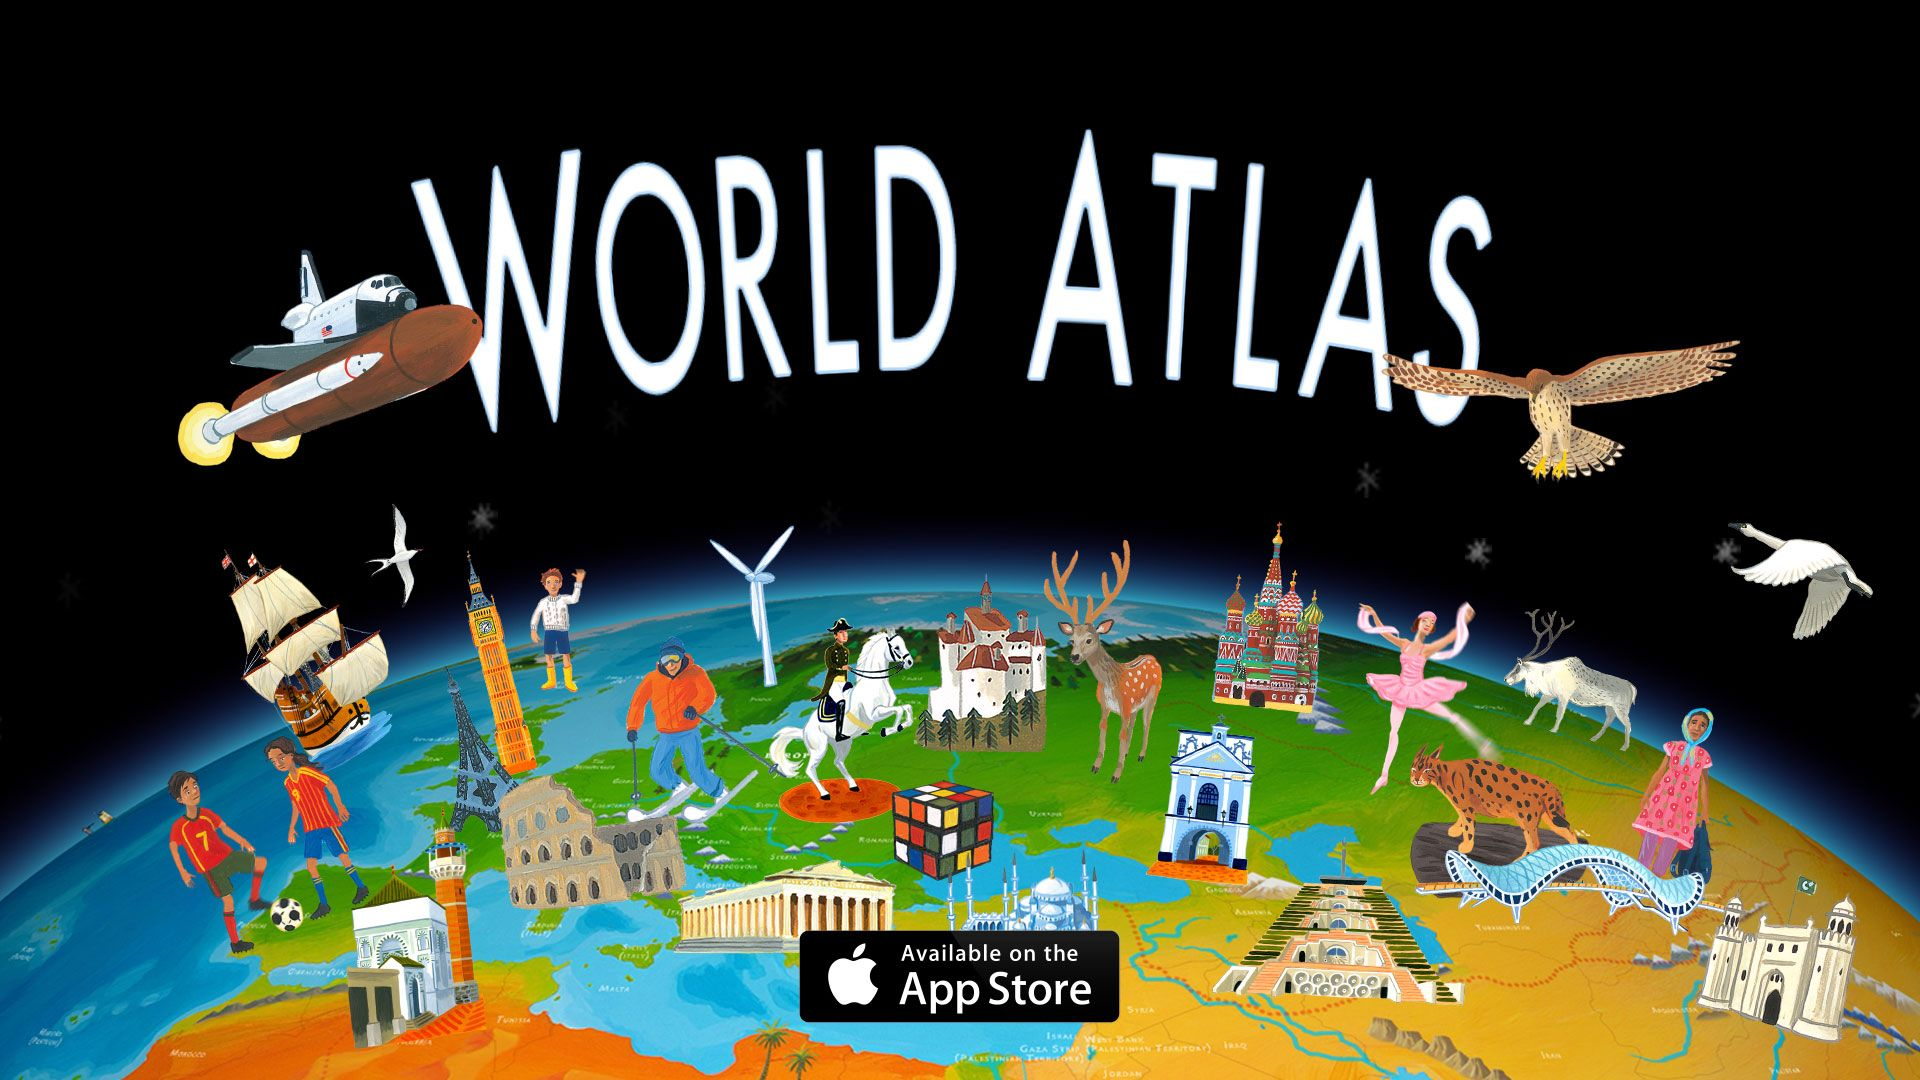 Barefoot World Atlas Interactive App With Images